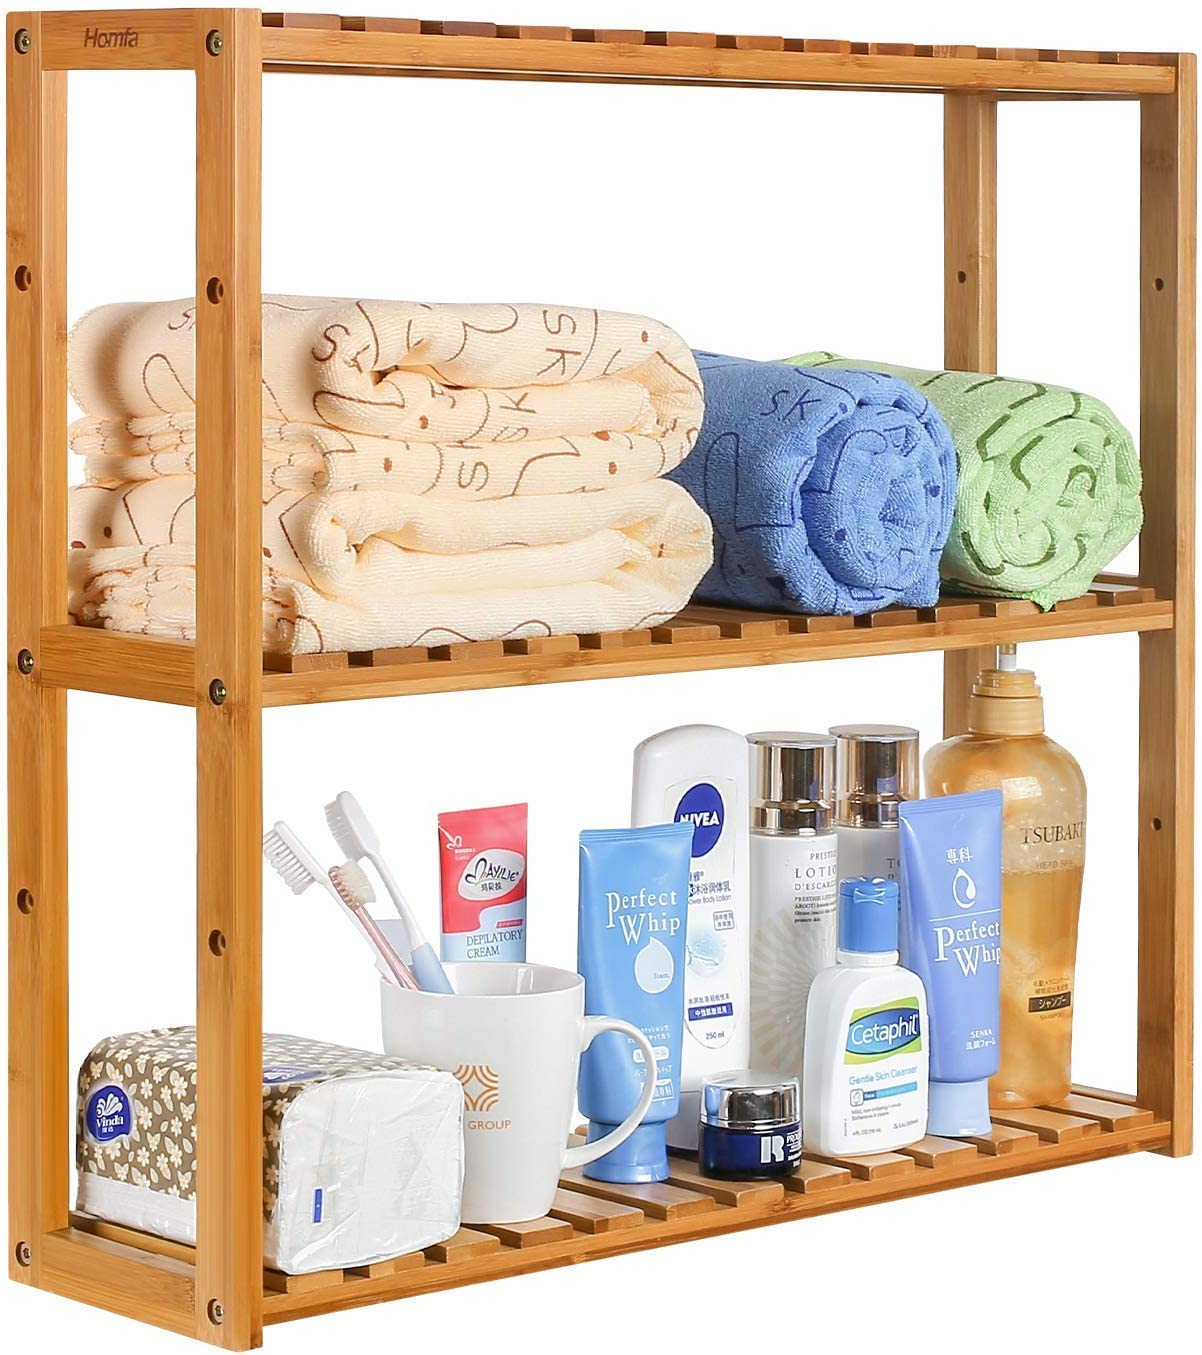 Homfa Bathroom Shelves 3 Tier Wall Shelf Storage Shelves Adjustable Shelving Unit Kitchen Storage Rack Bathroom Organiser Bamboo Natural 60x15x54cm Amazon Co Uk Diy Tools